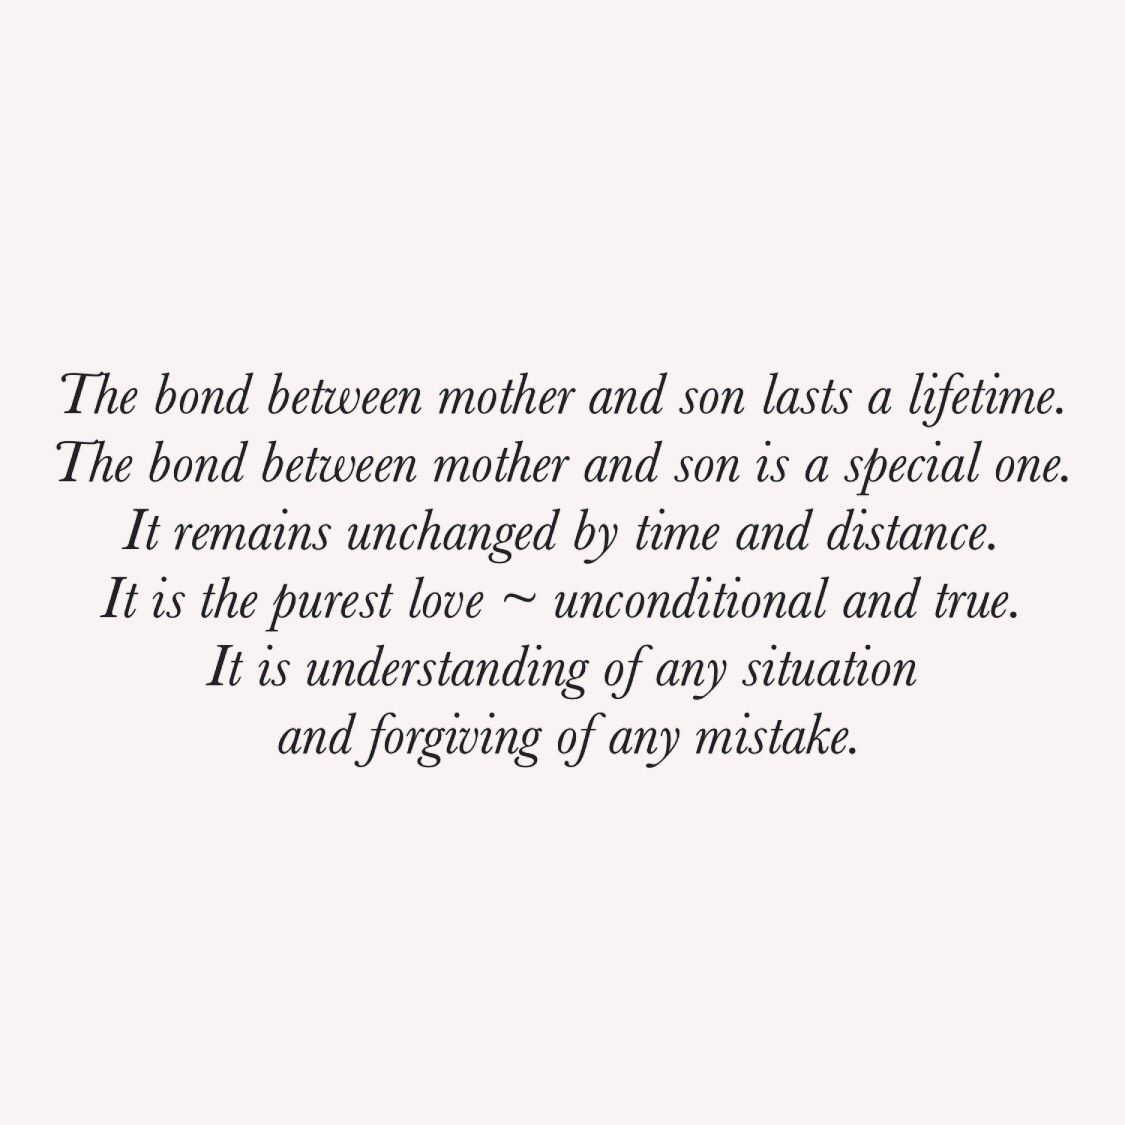 10 Beautiful Mother And Son Bonding Quotes And Images Bond Quotes Son Quotes Love Children Quotes